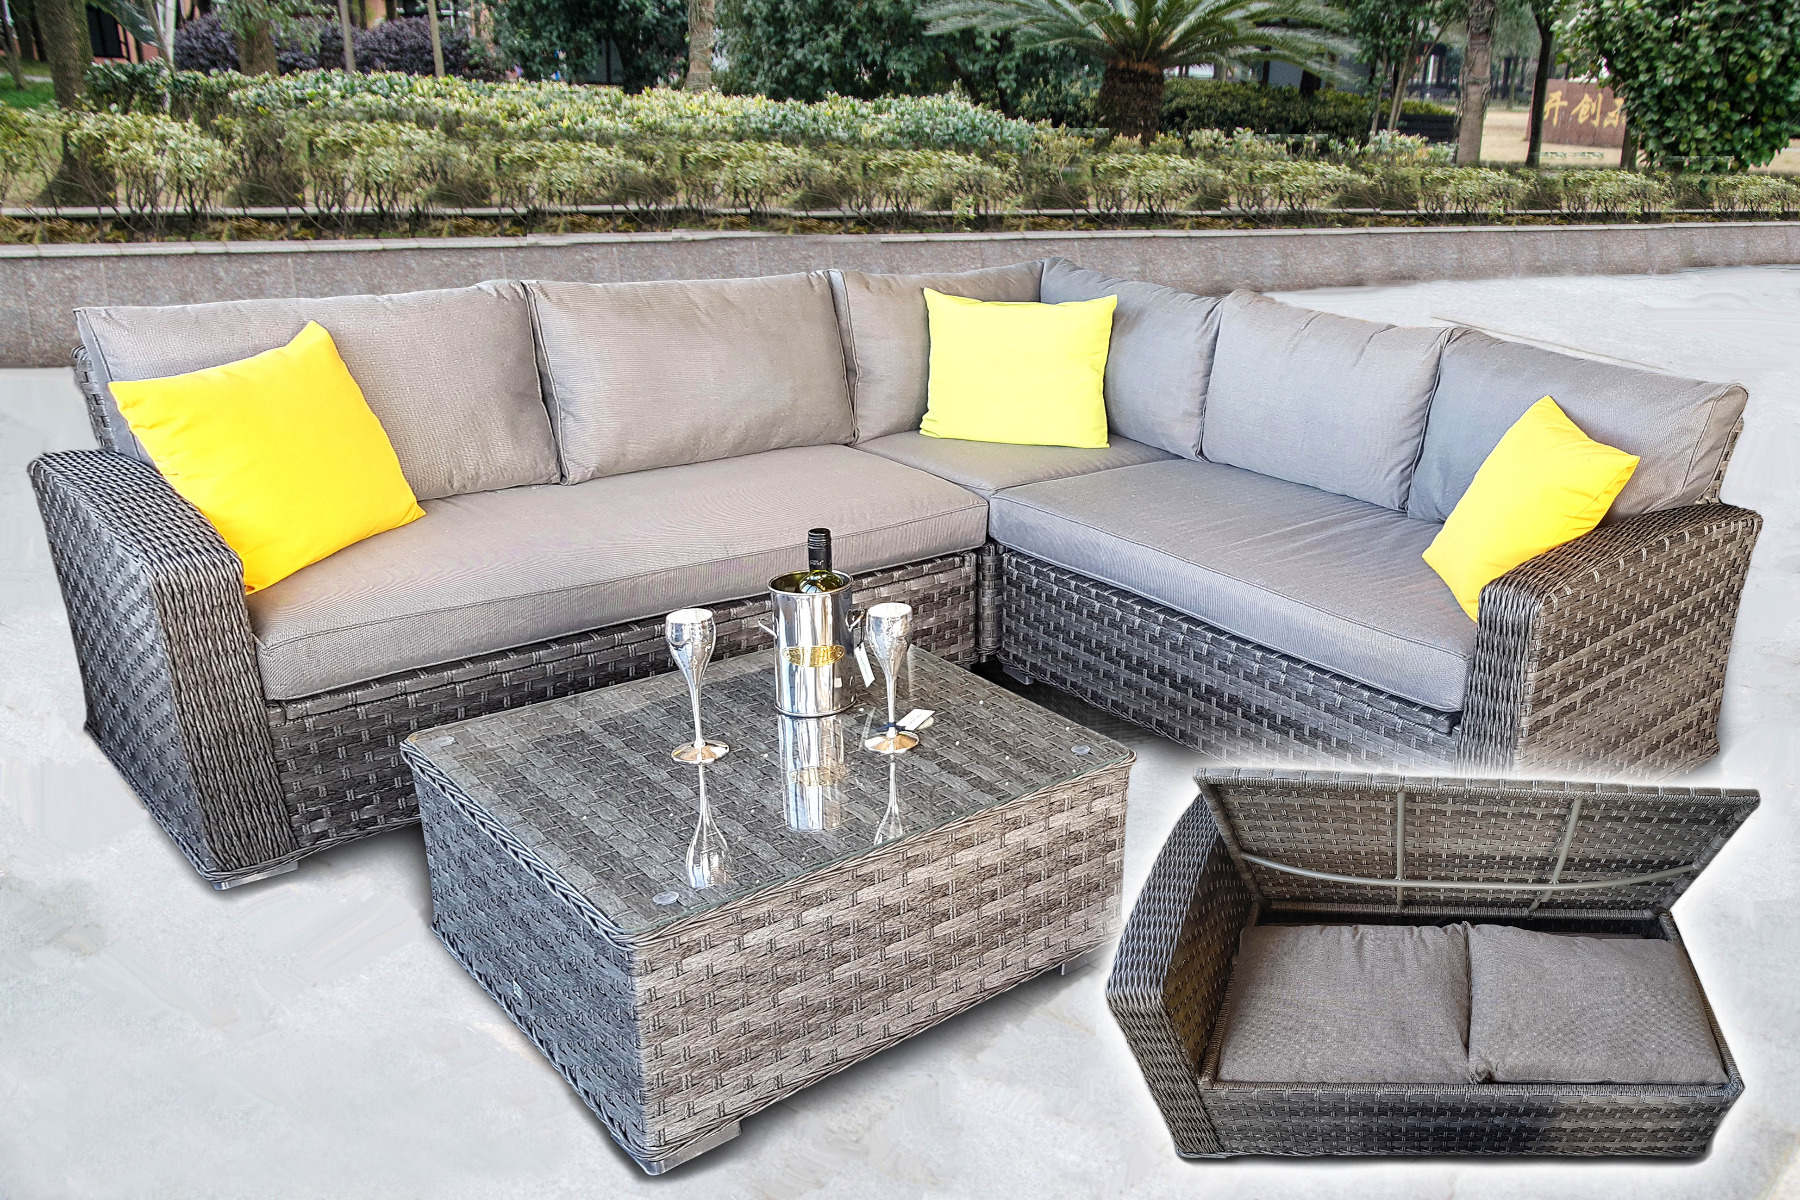 How To Protect Outdoor Rattan Furniture In Winter Blog - Garden Furniture Clearance Tunbridge Wells